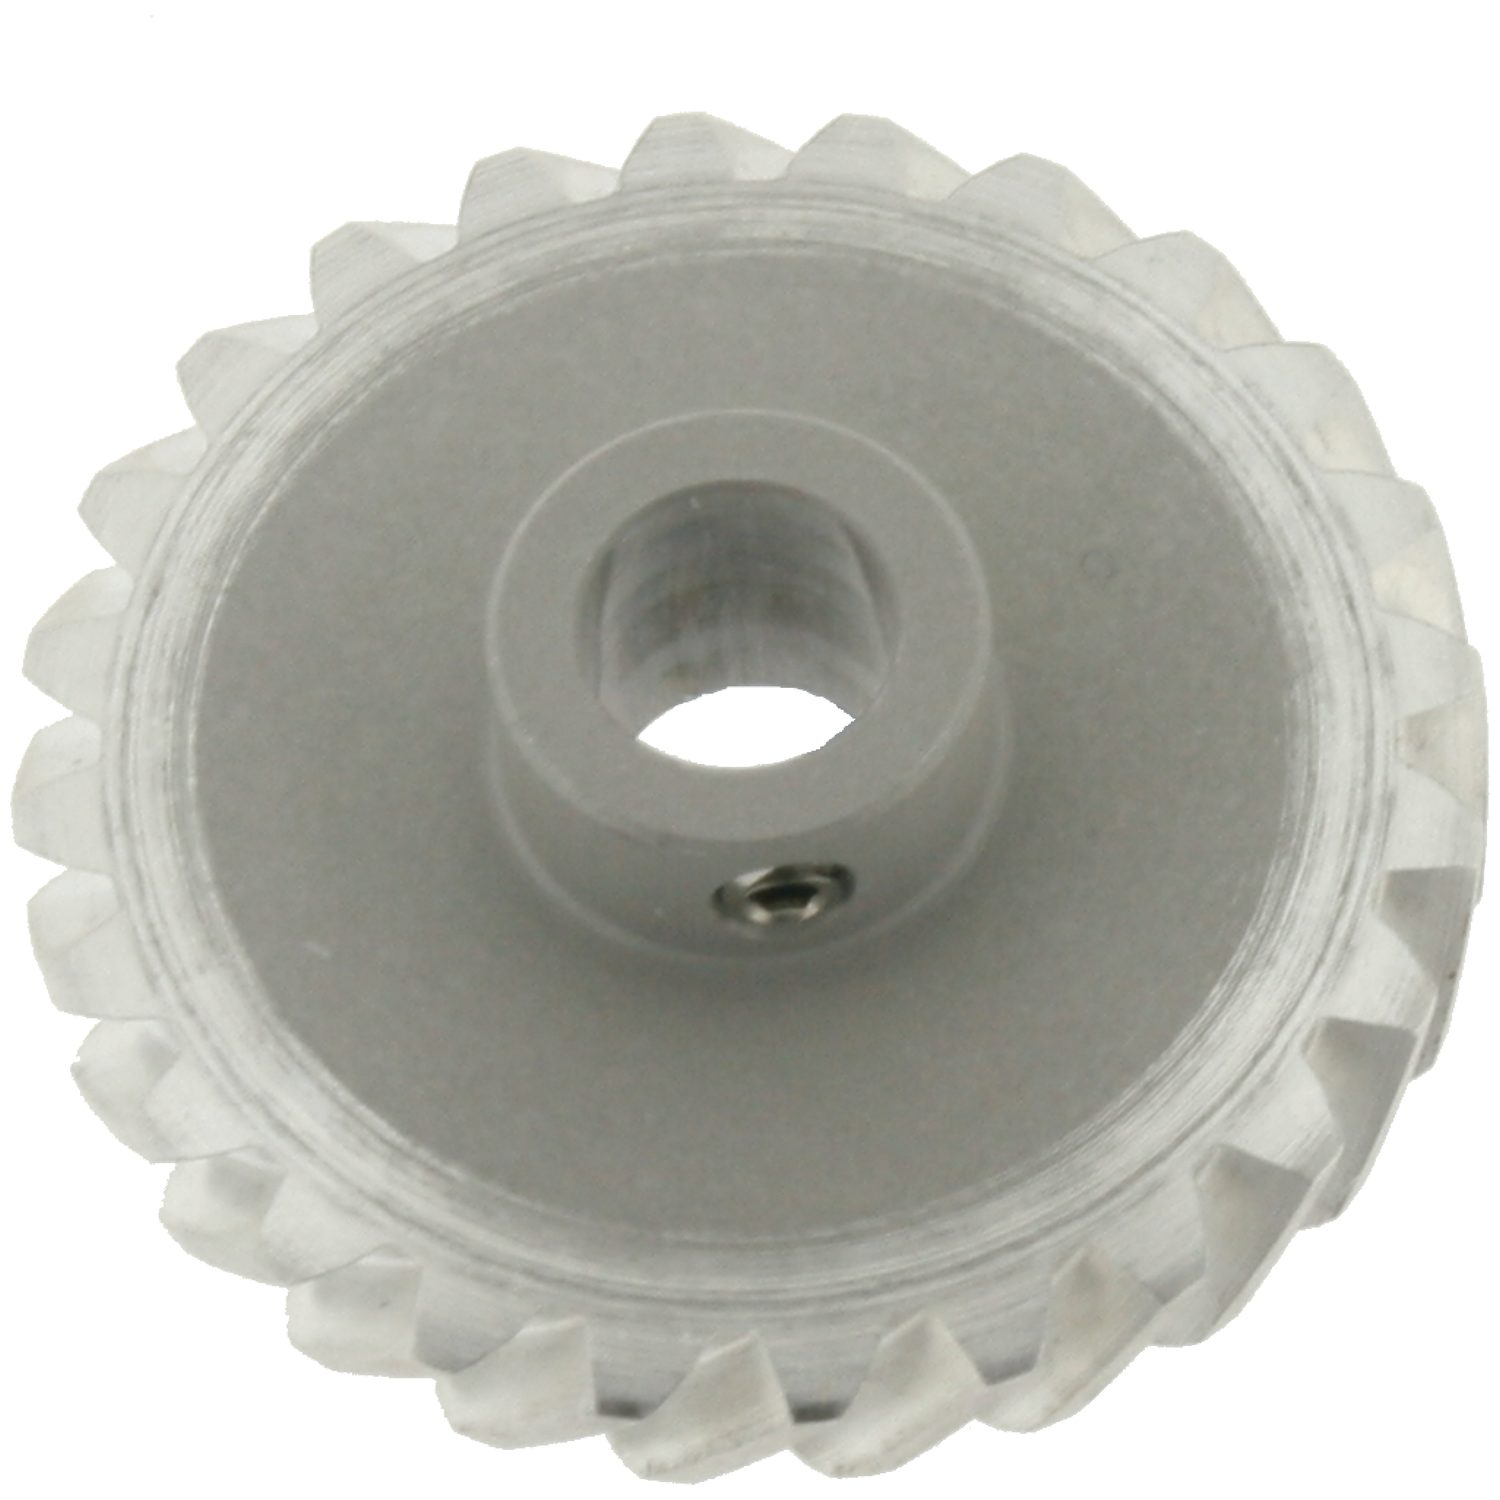 R2162.1 - 0,4 Module Right Hand Helical Gears